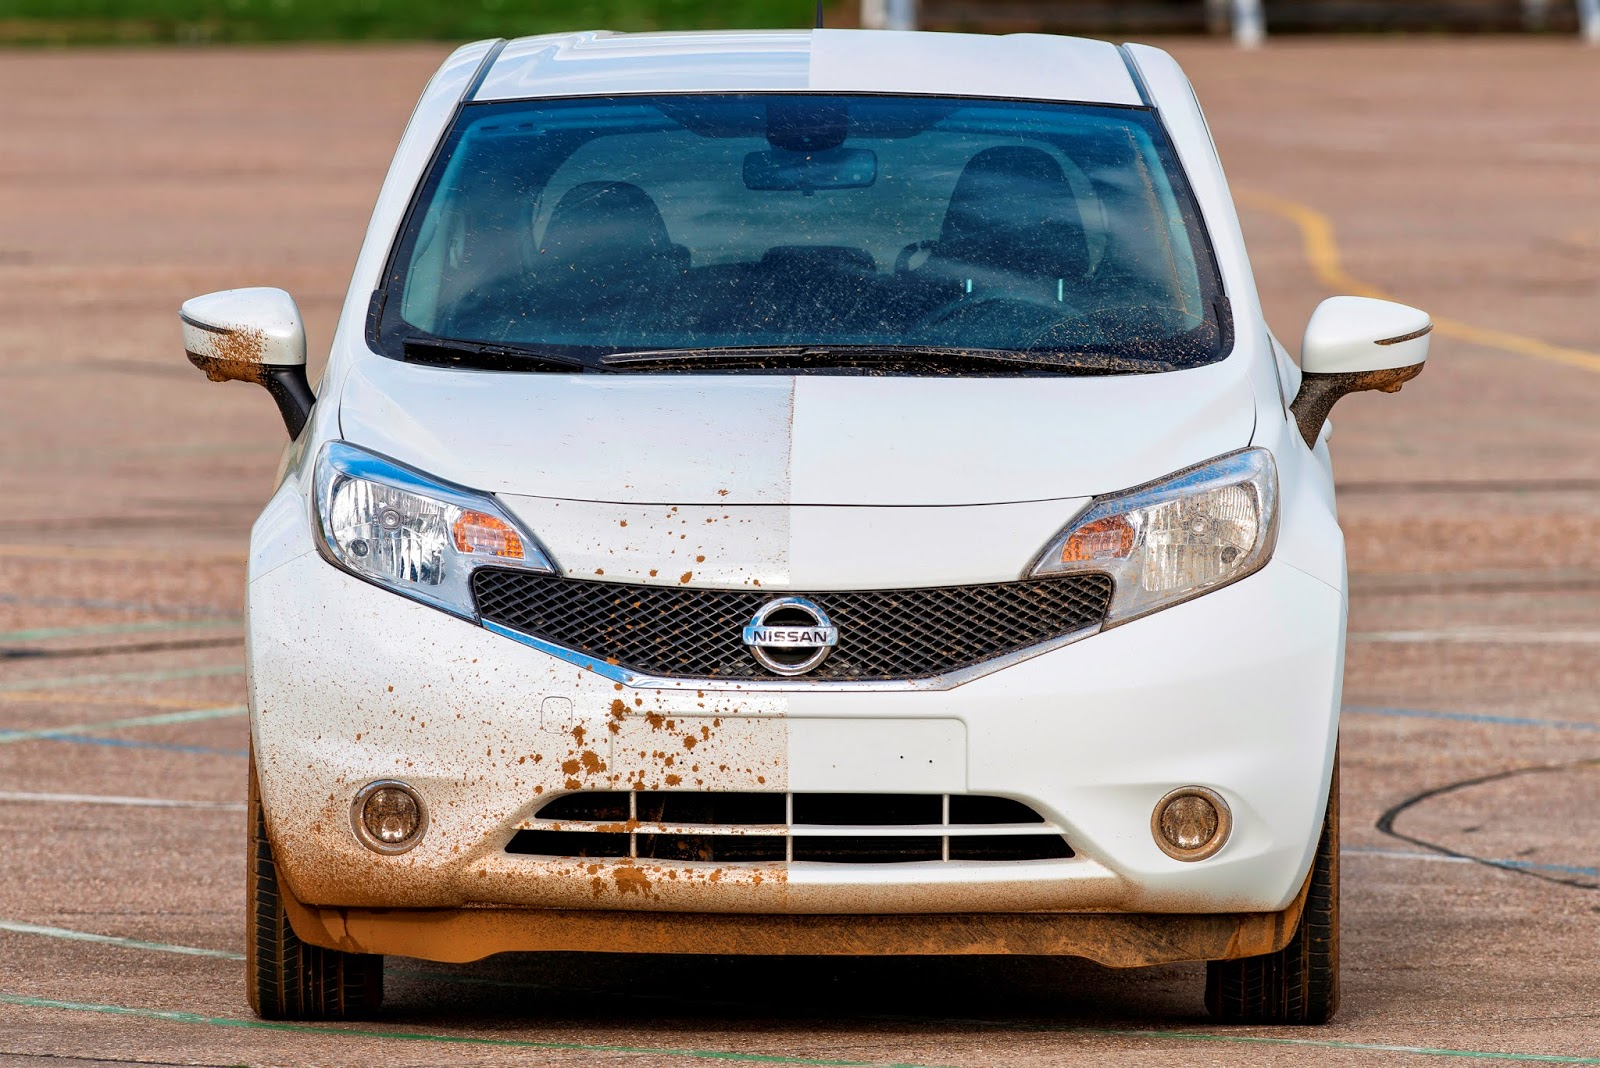 Nissan develops first self-cleaning car prototype